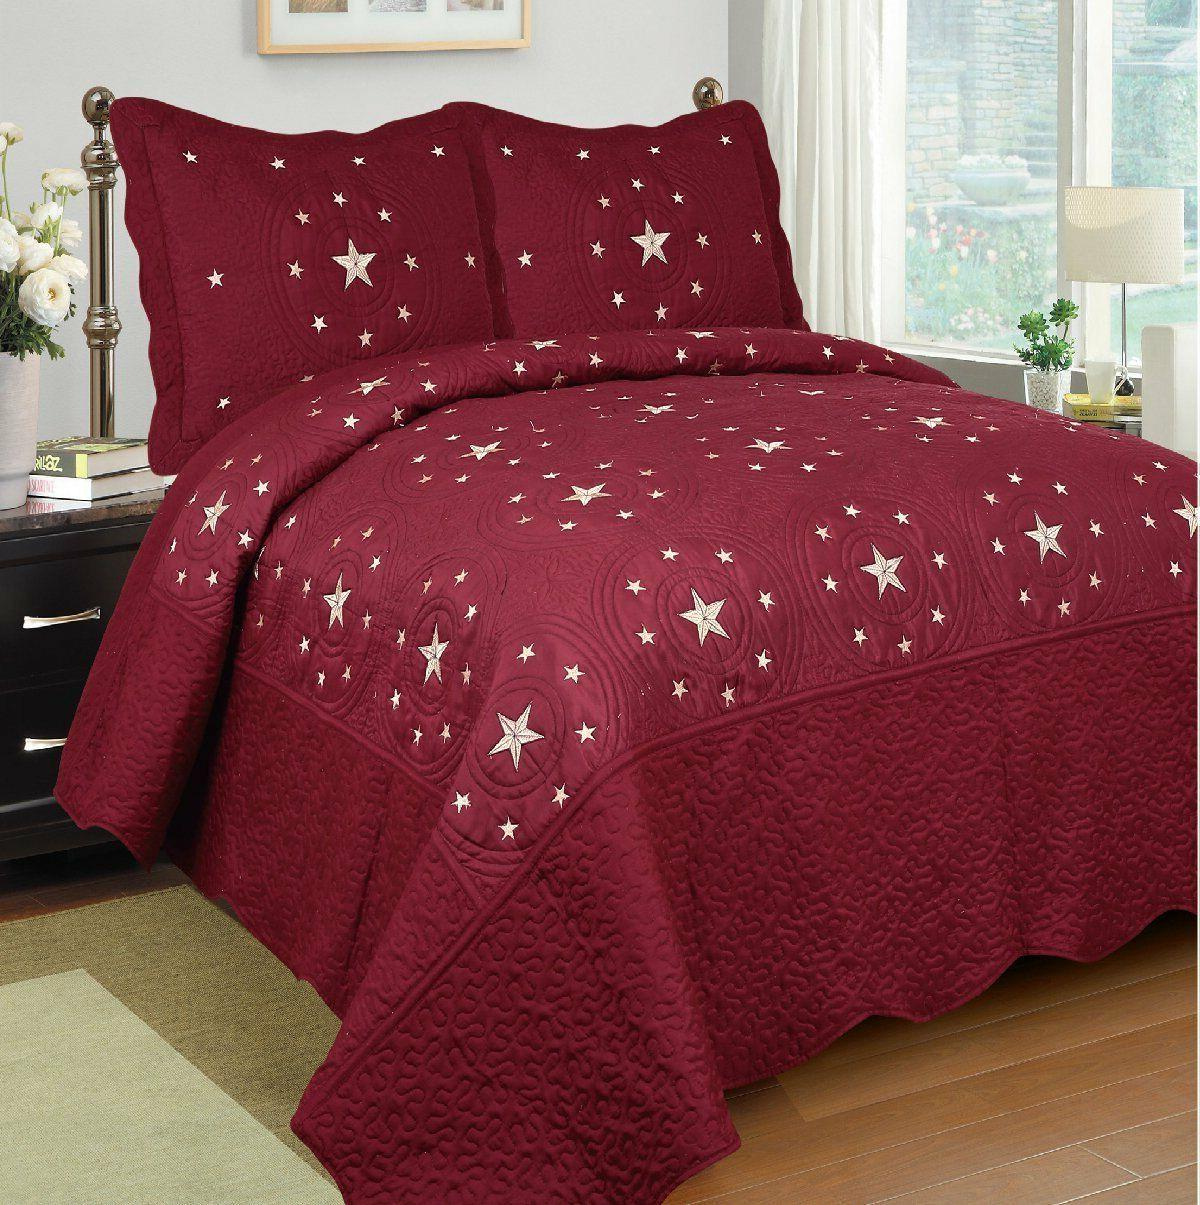 3pc burgundy star bedspread quilt set embroidery